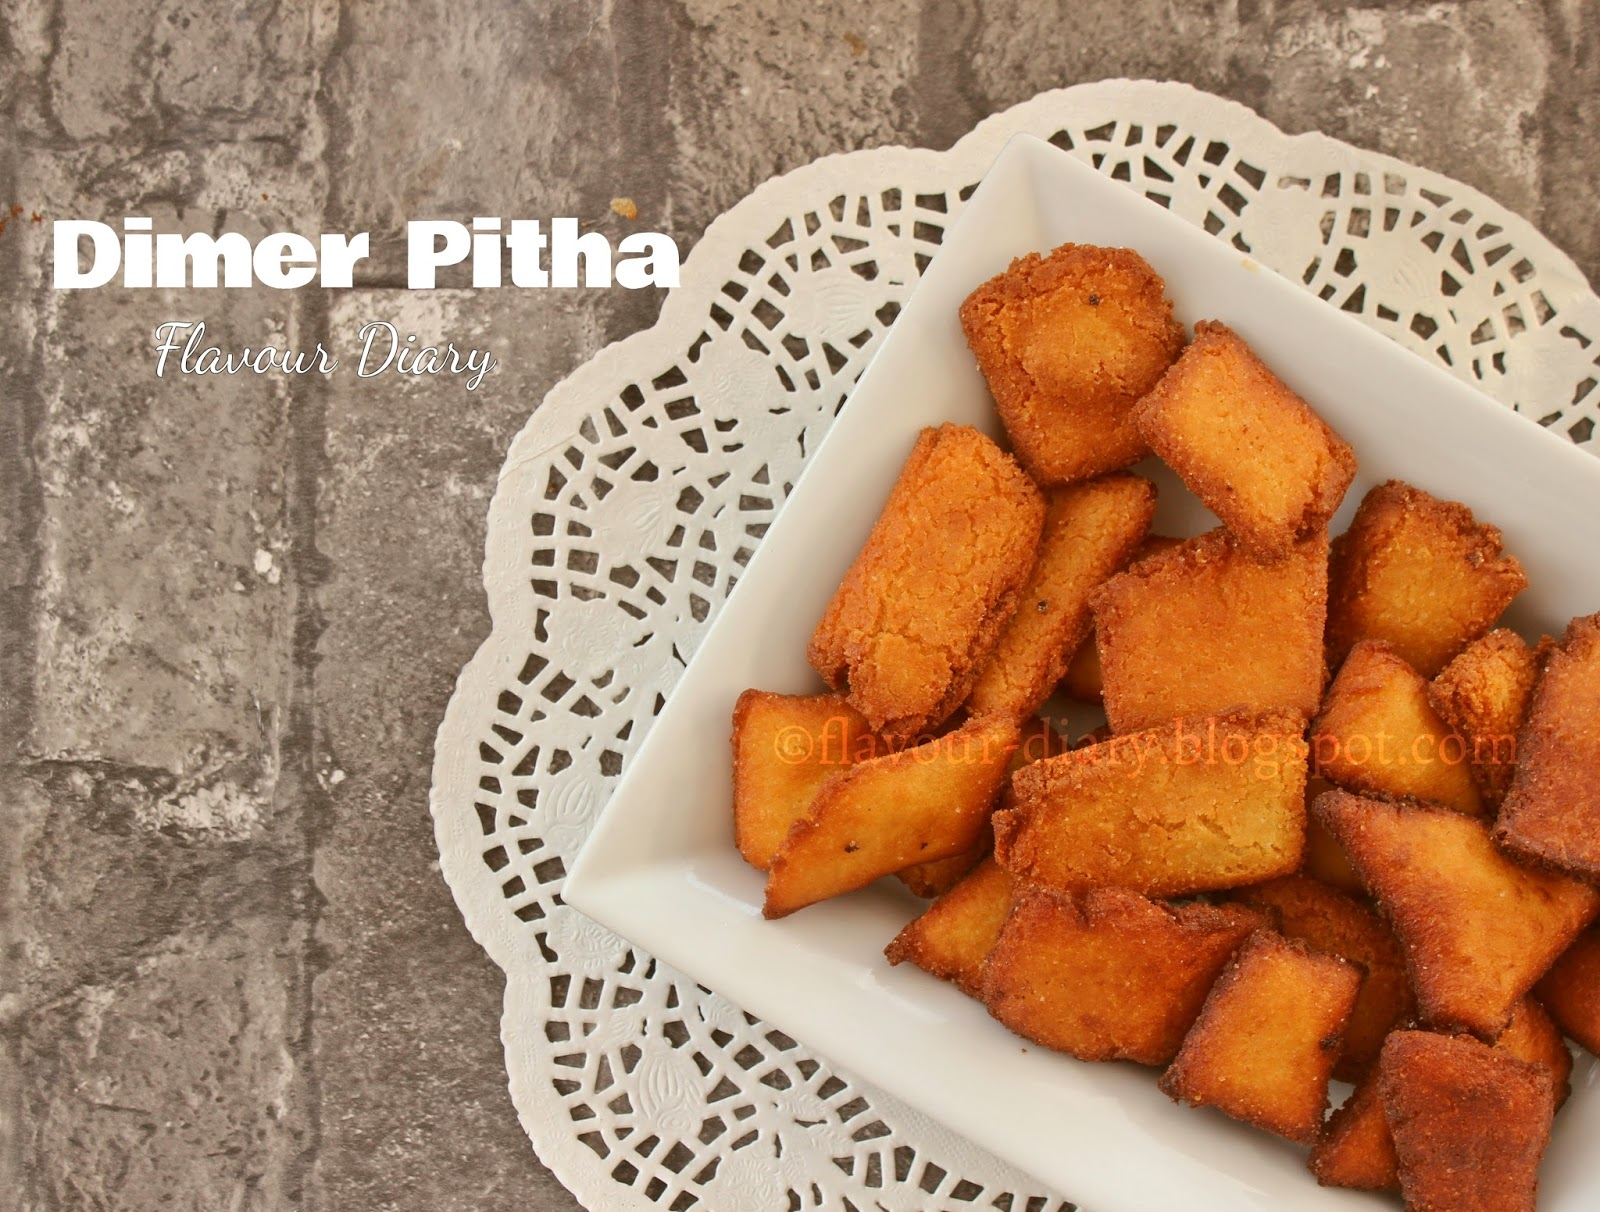 Dimer pitha recipe flavour diary bangladeshi recipe fried dimer pitha recipe flavour diary bangladeshi recipe fried biscuit recipe forumfinder Images